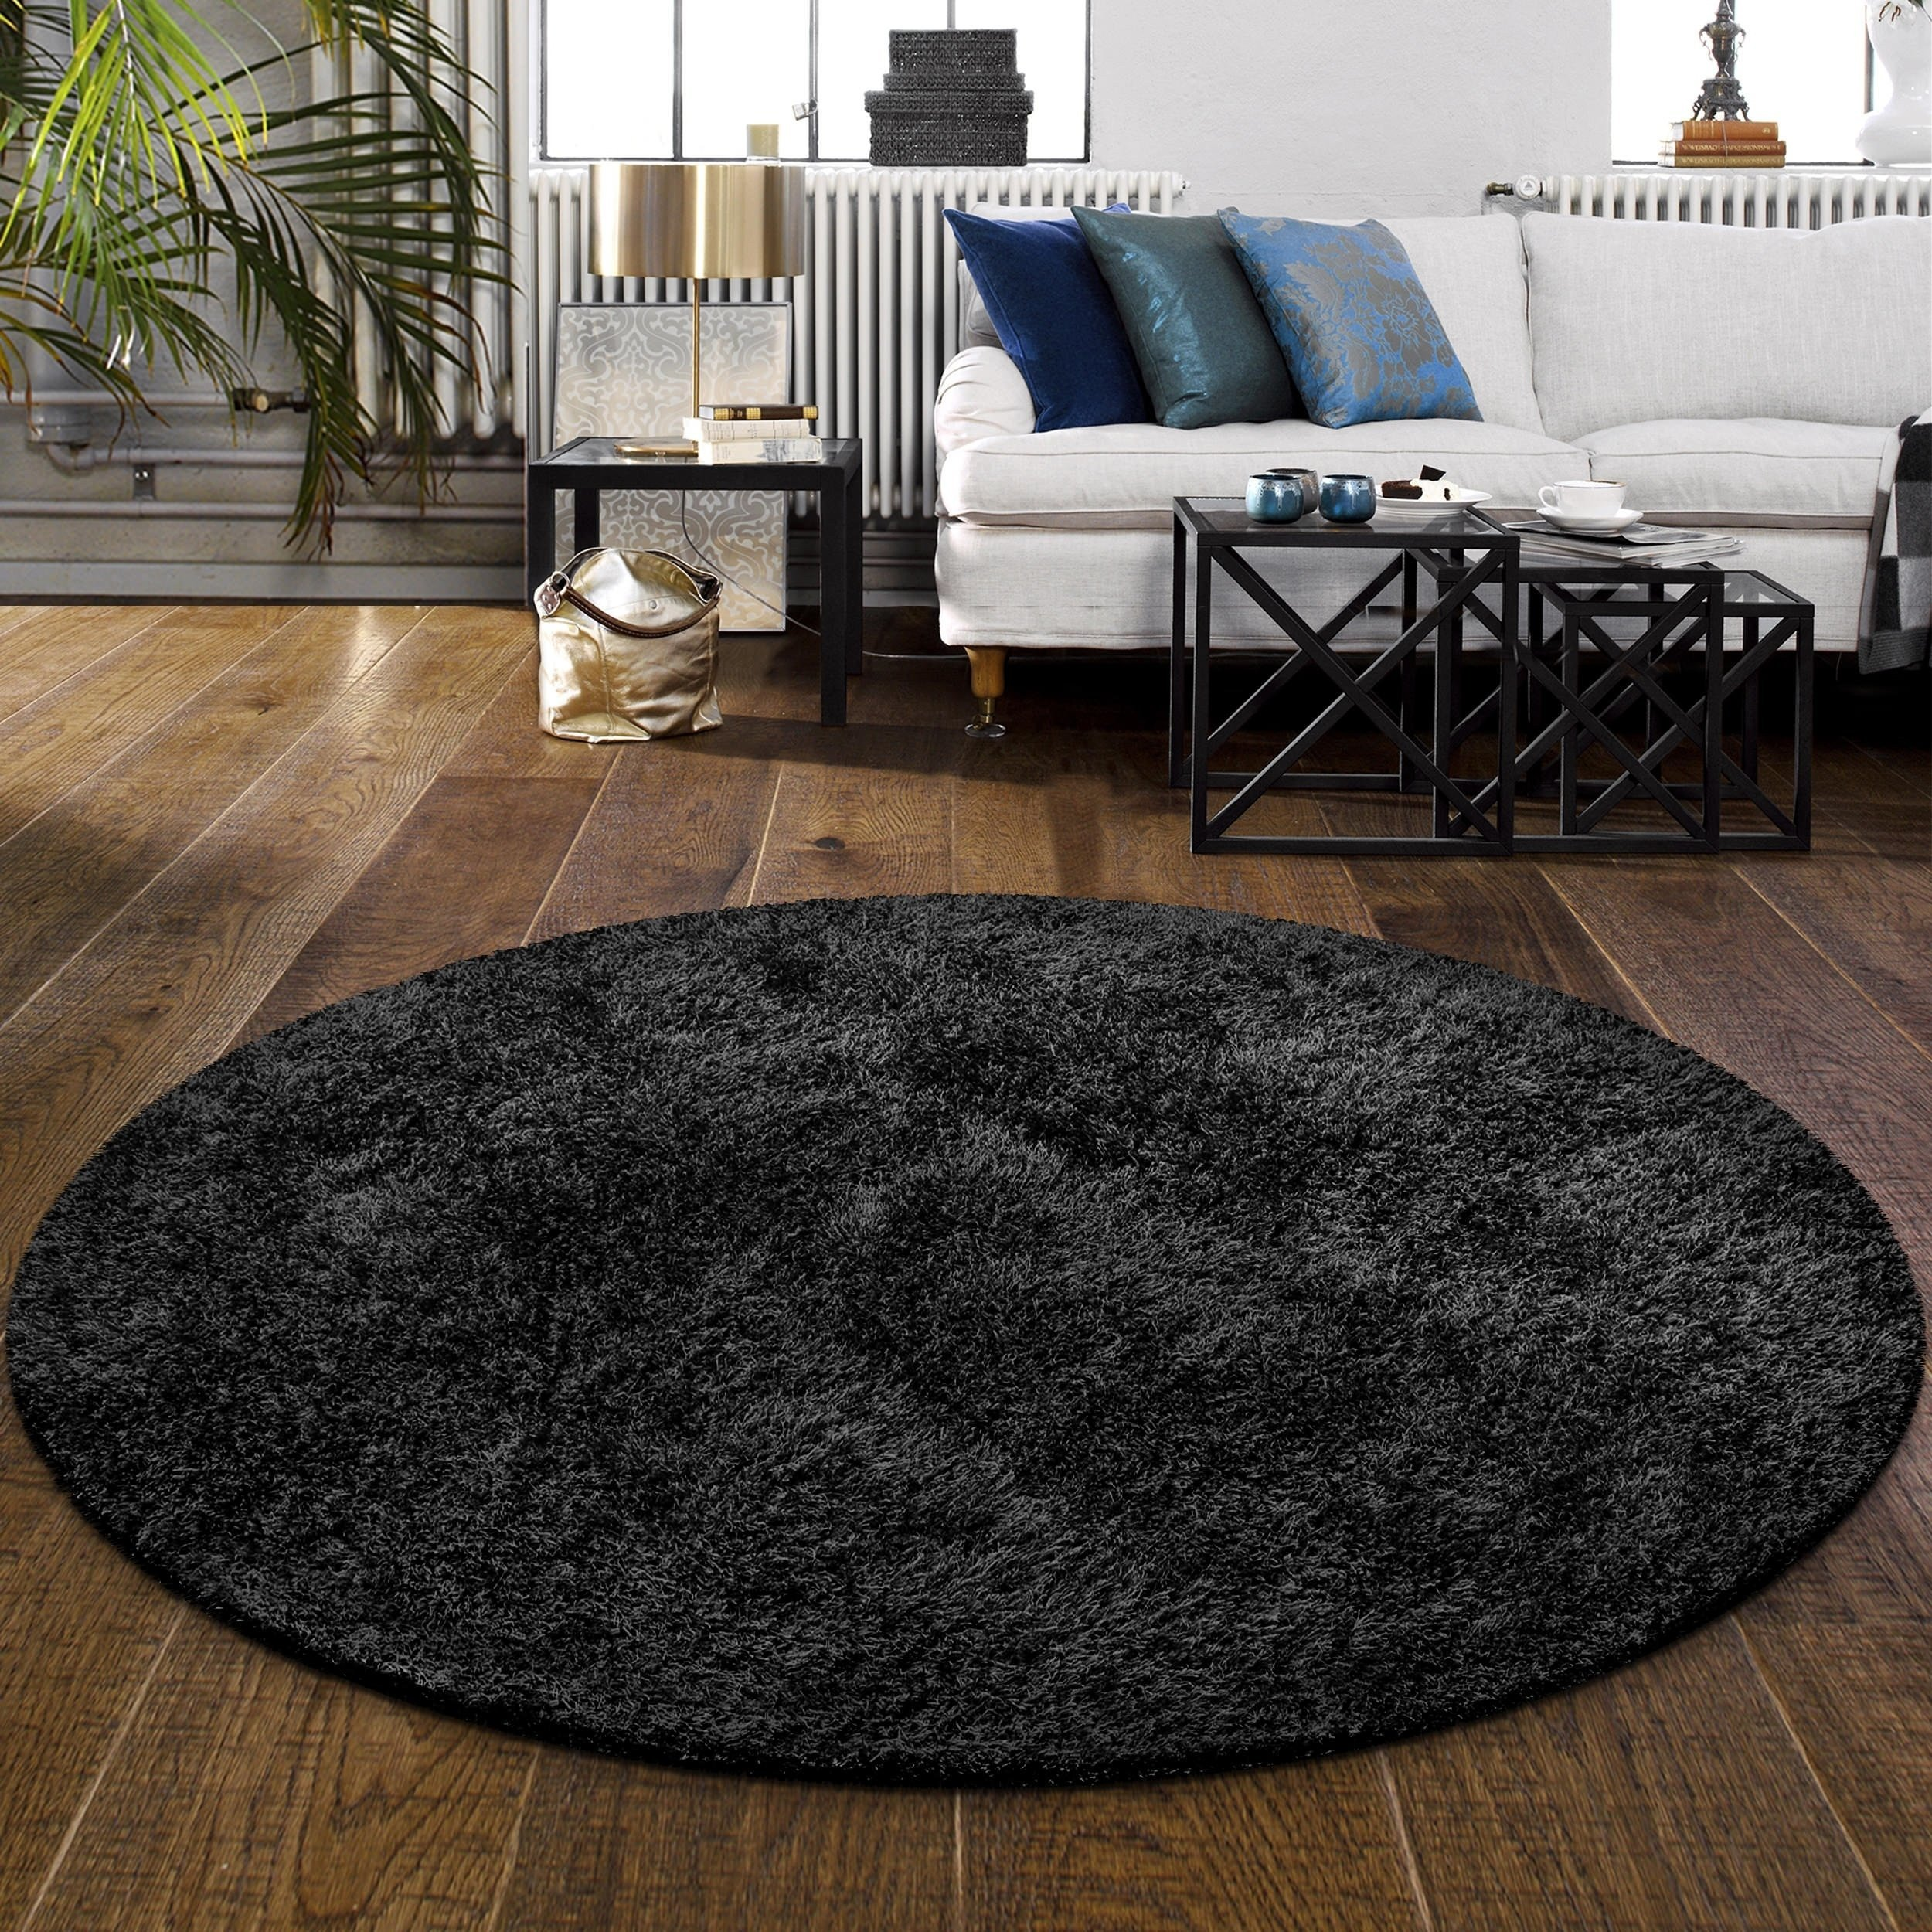 Fluffy Carpet for Bedroom Lovely Superior Elegant Plush Hand Woven Black Shag Round Rug 4